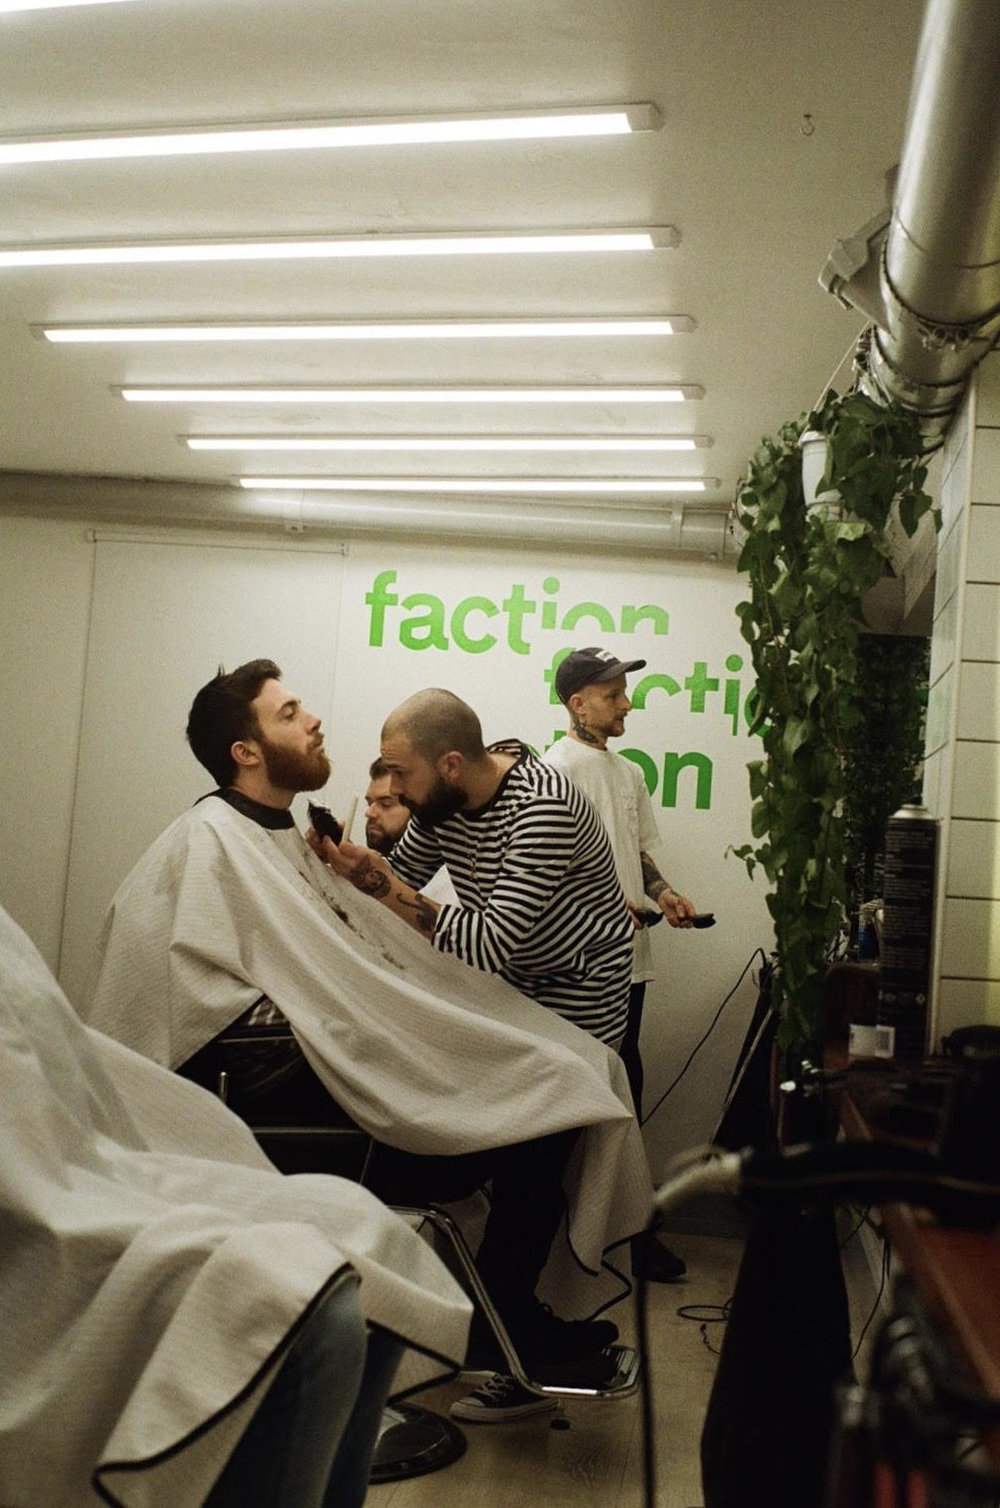 Aaron in flow.. Photo by Faction barber Joe Cleary